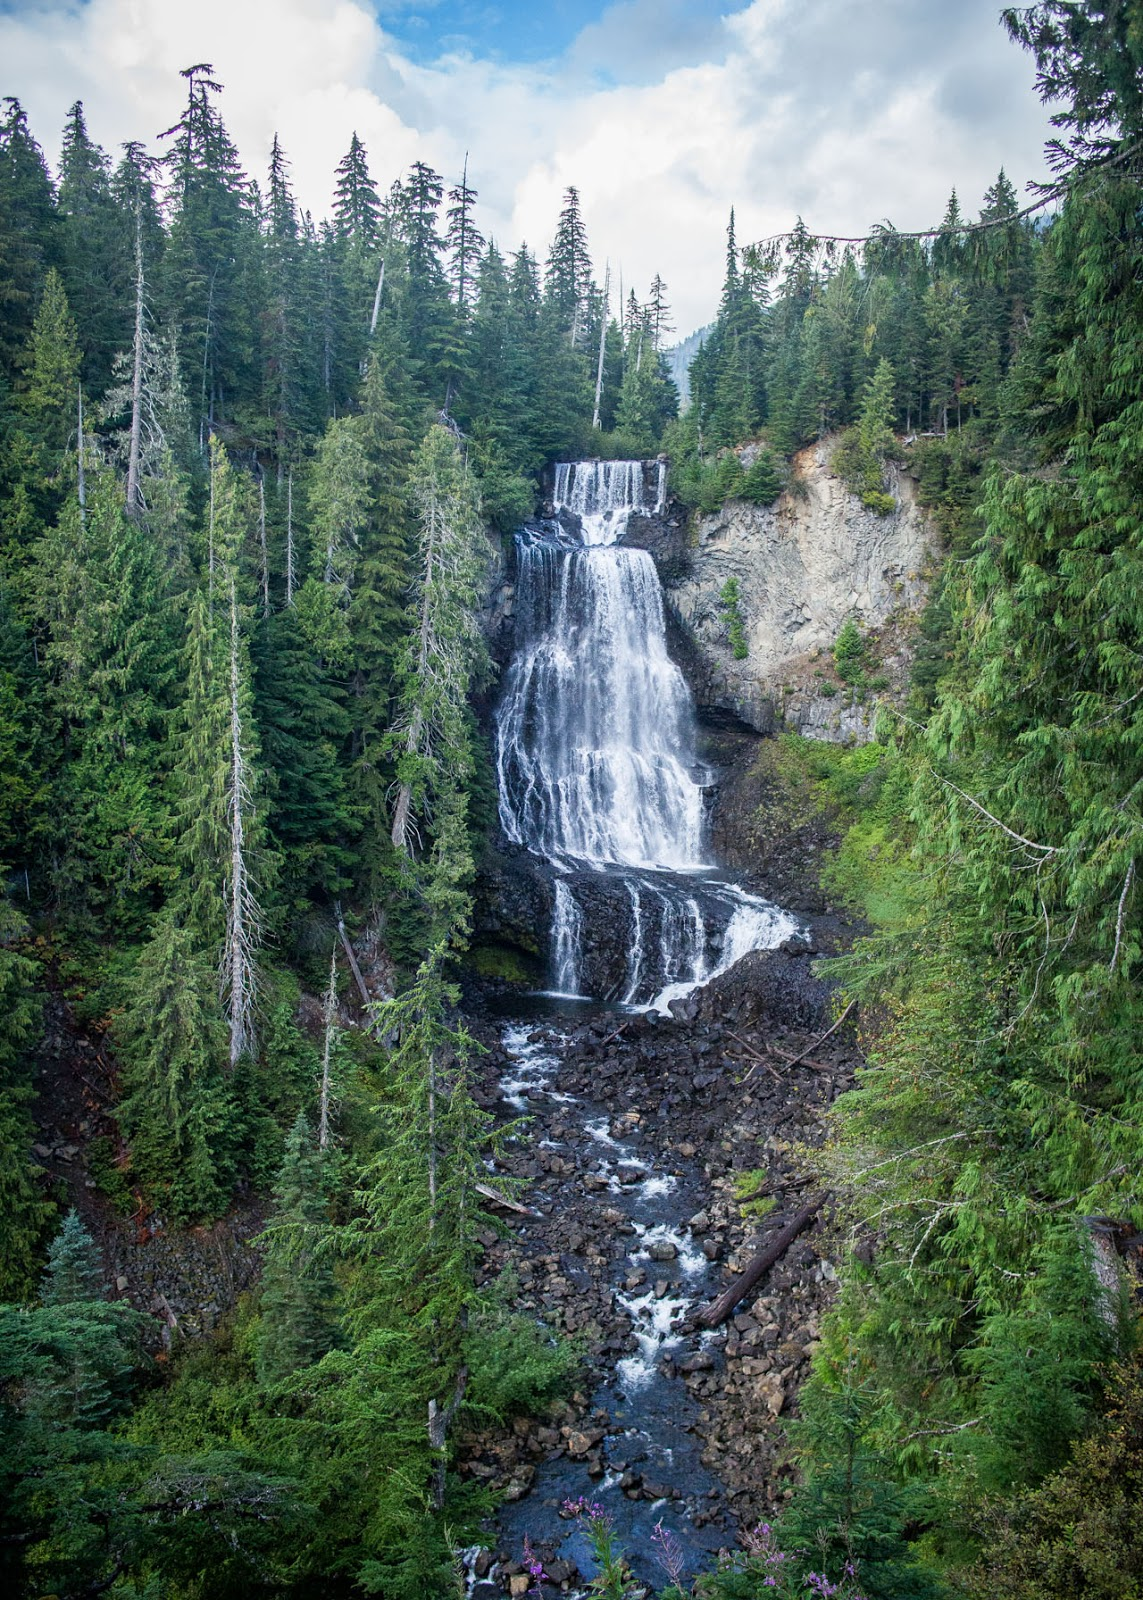 In My Dreams - Canadian Blogger - mini BC vacation - Travel diary - Alexander Falls